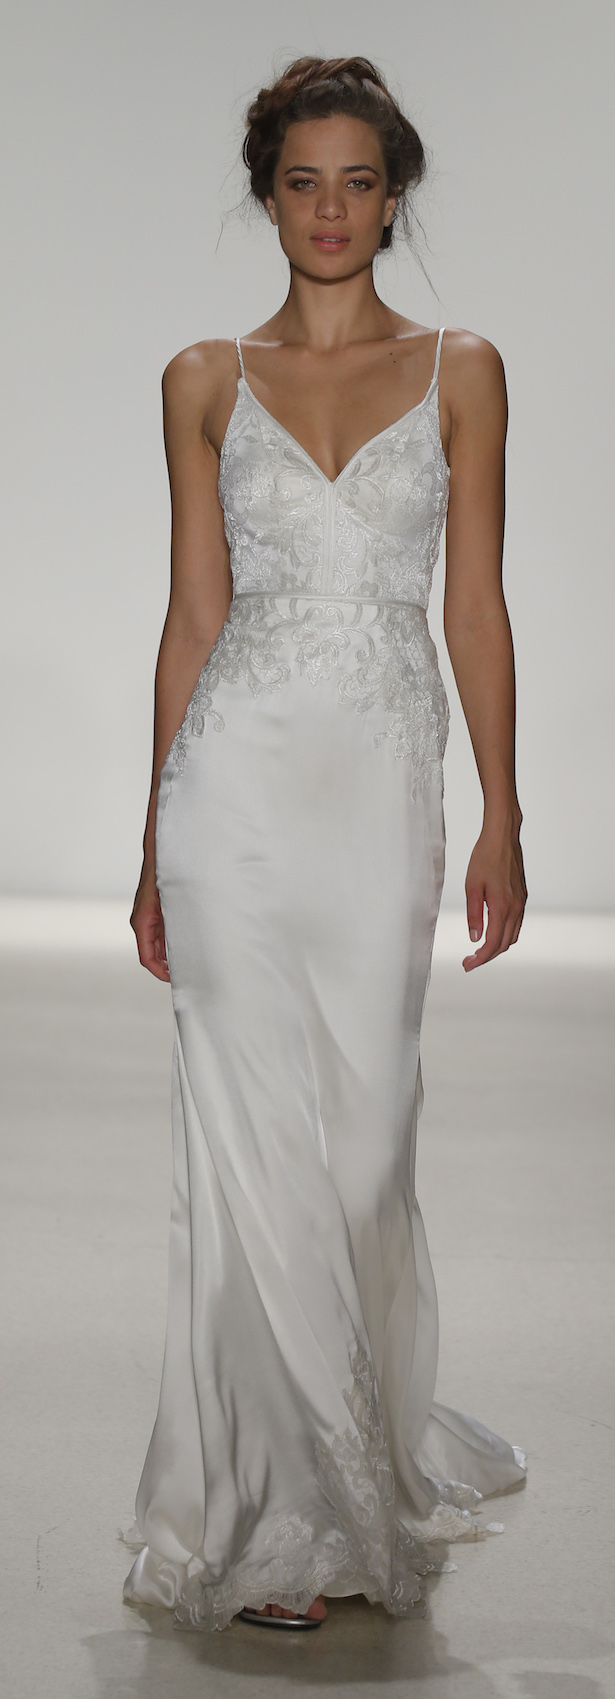 Wedding Dress by Kelly Faetanini Spring 2018 - BIANCA